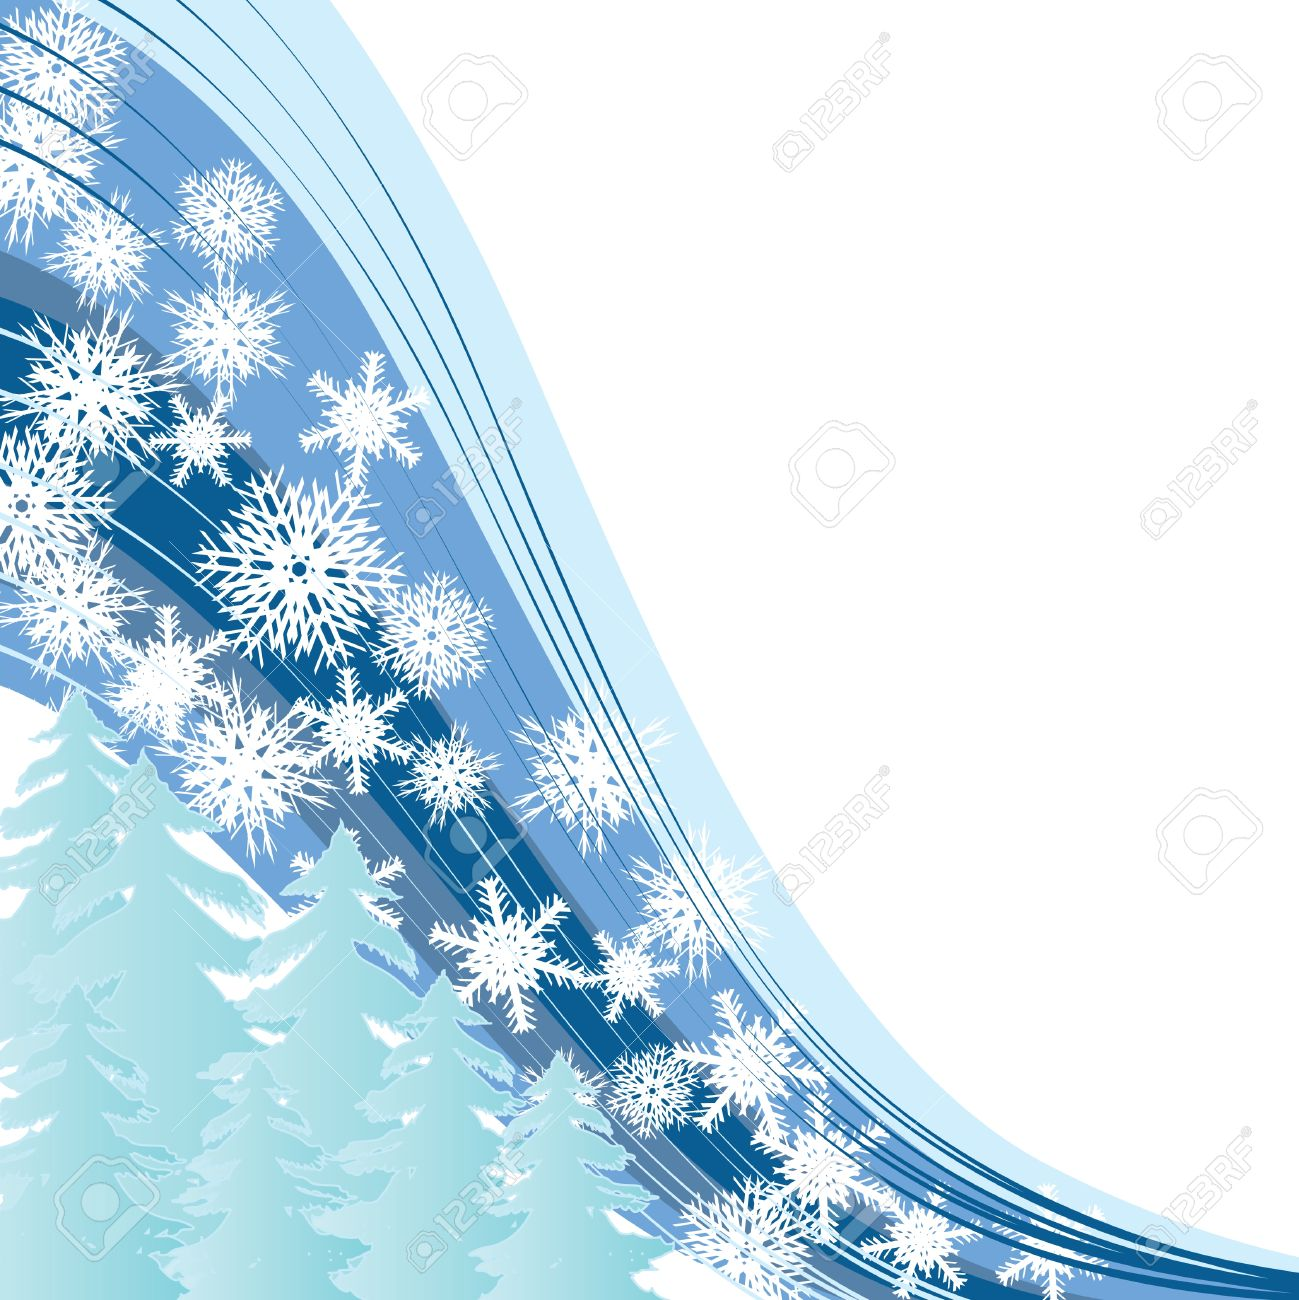 vector white snow merry christmas and happy new year background for your greetings card